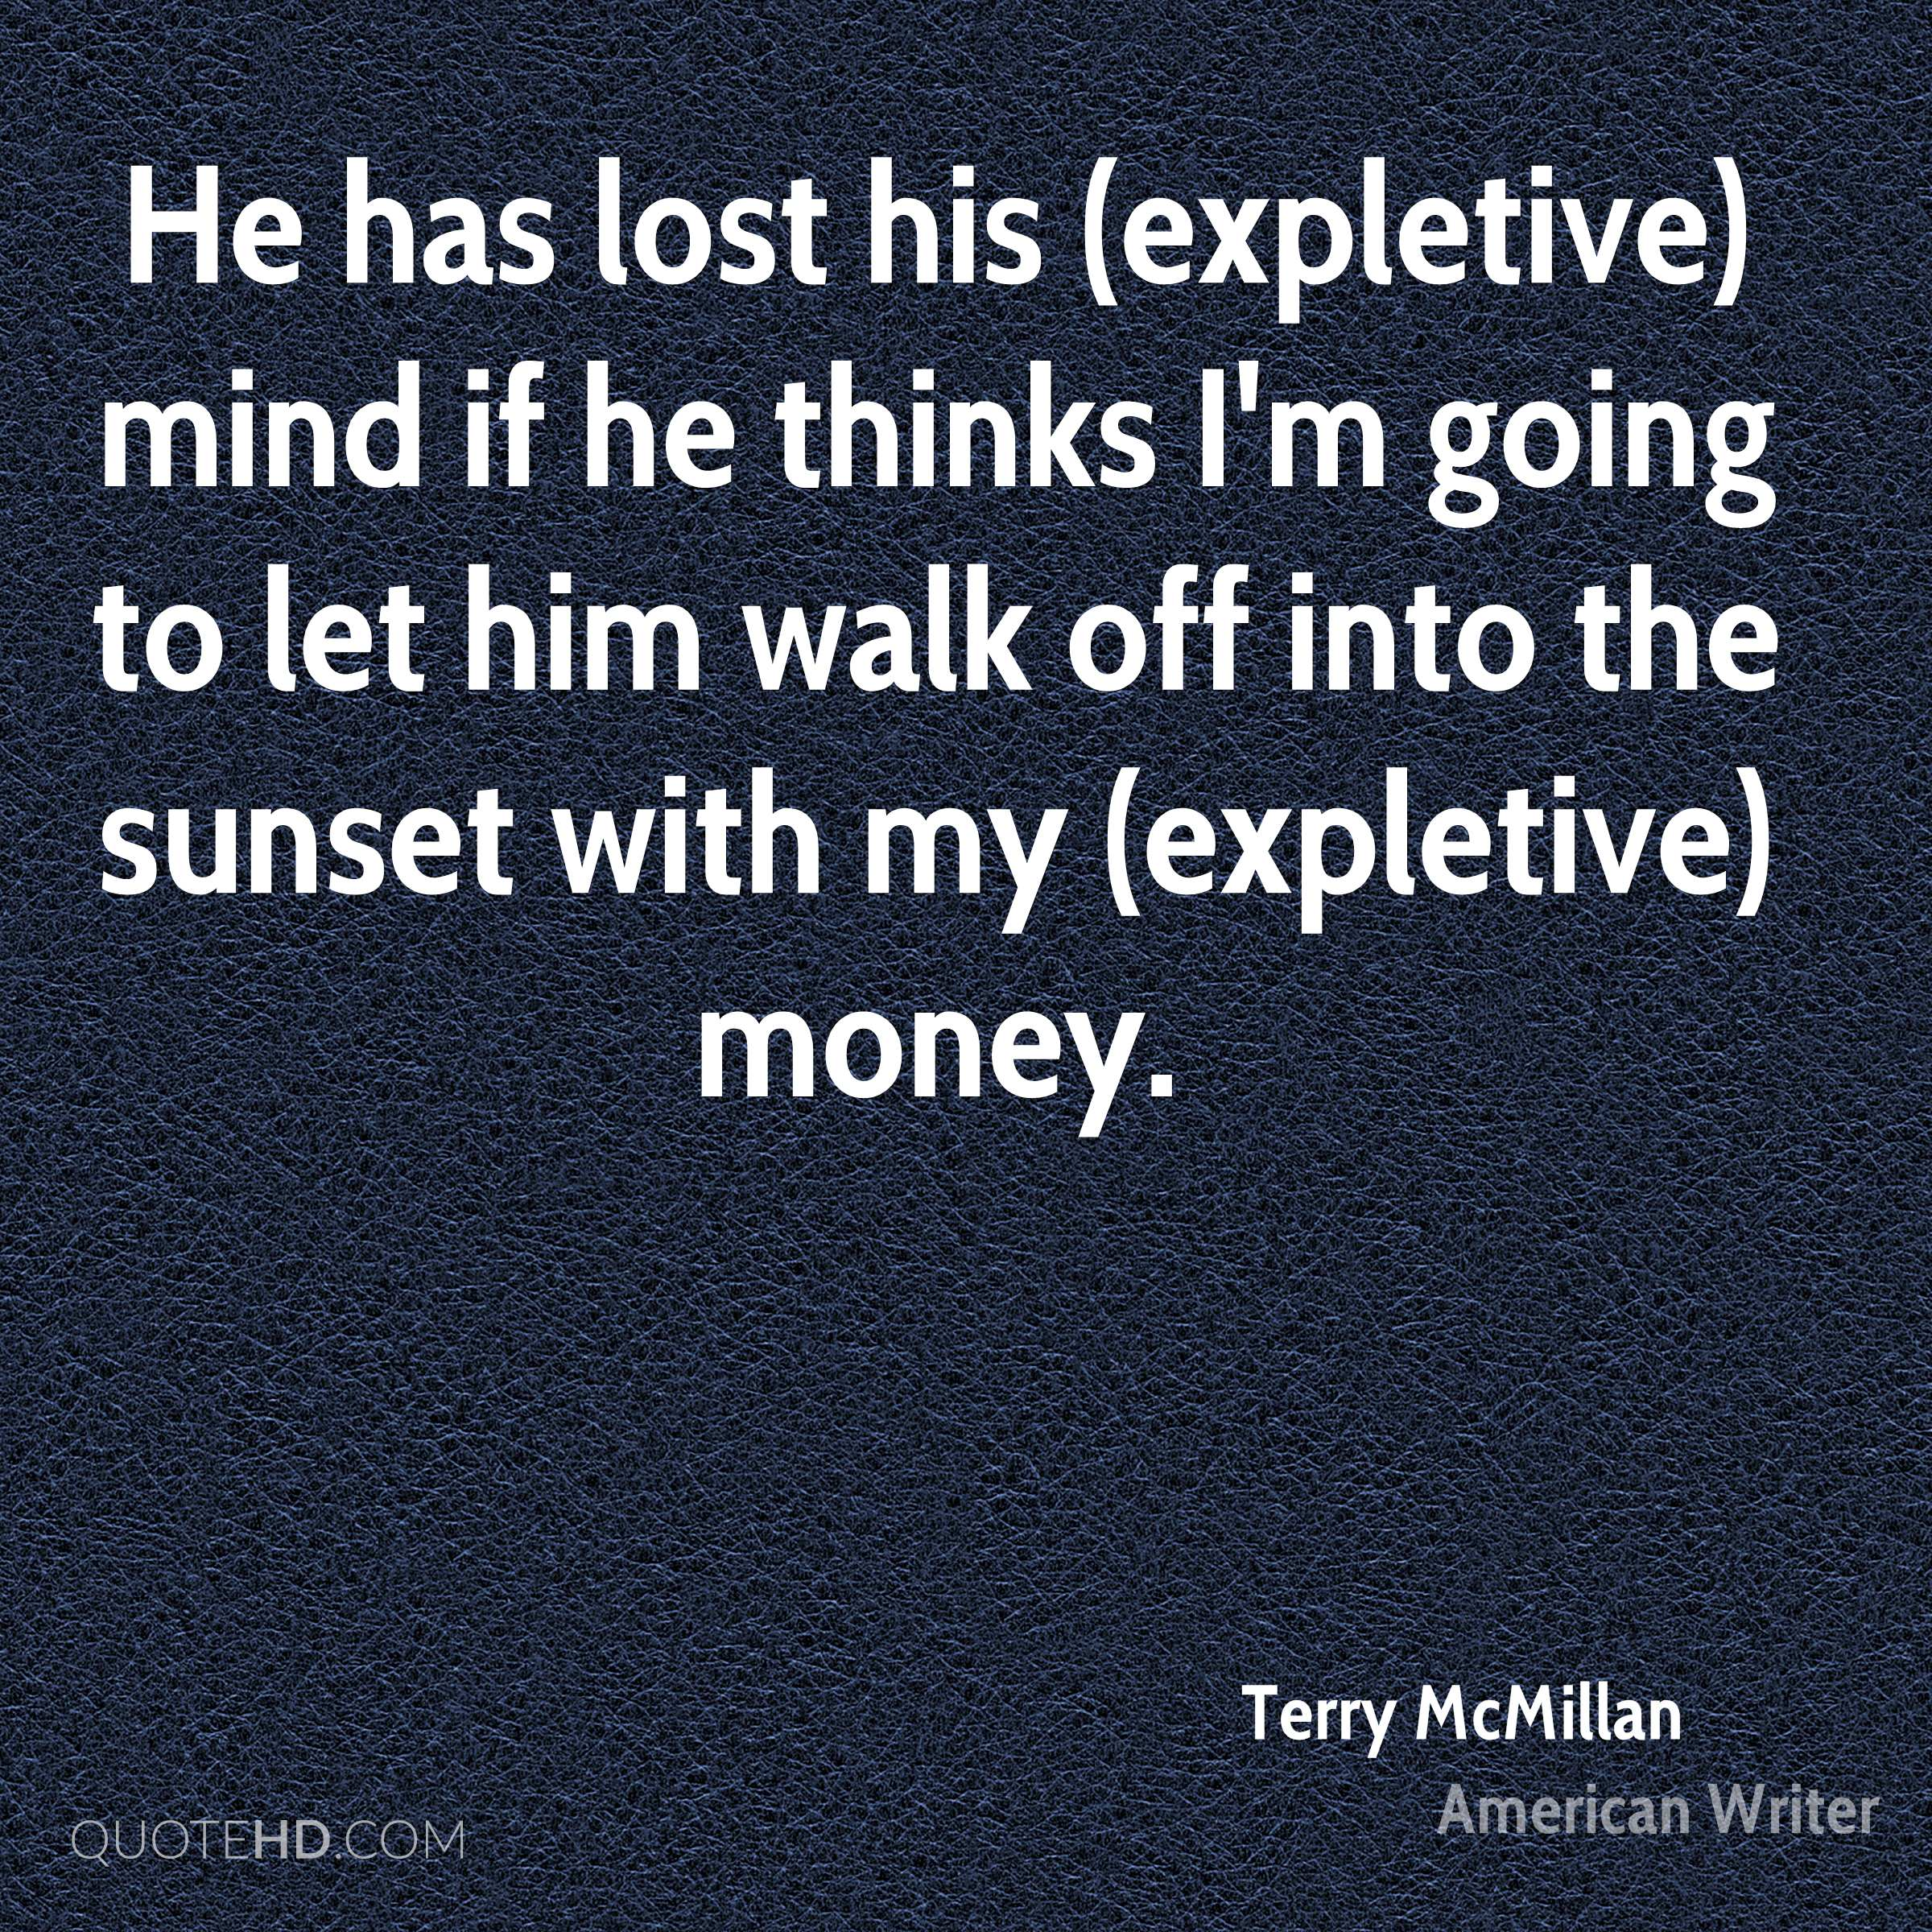 He has lost his (expletive) mind if he thinks I'm going to let him walk off into the sunset with my (expletive) money.